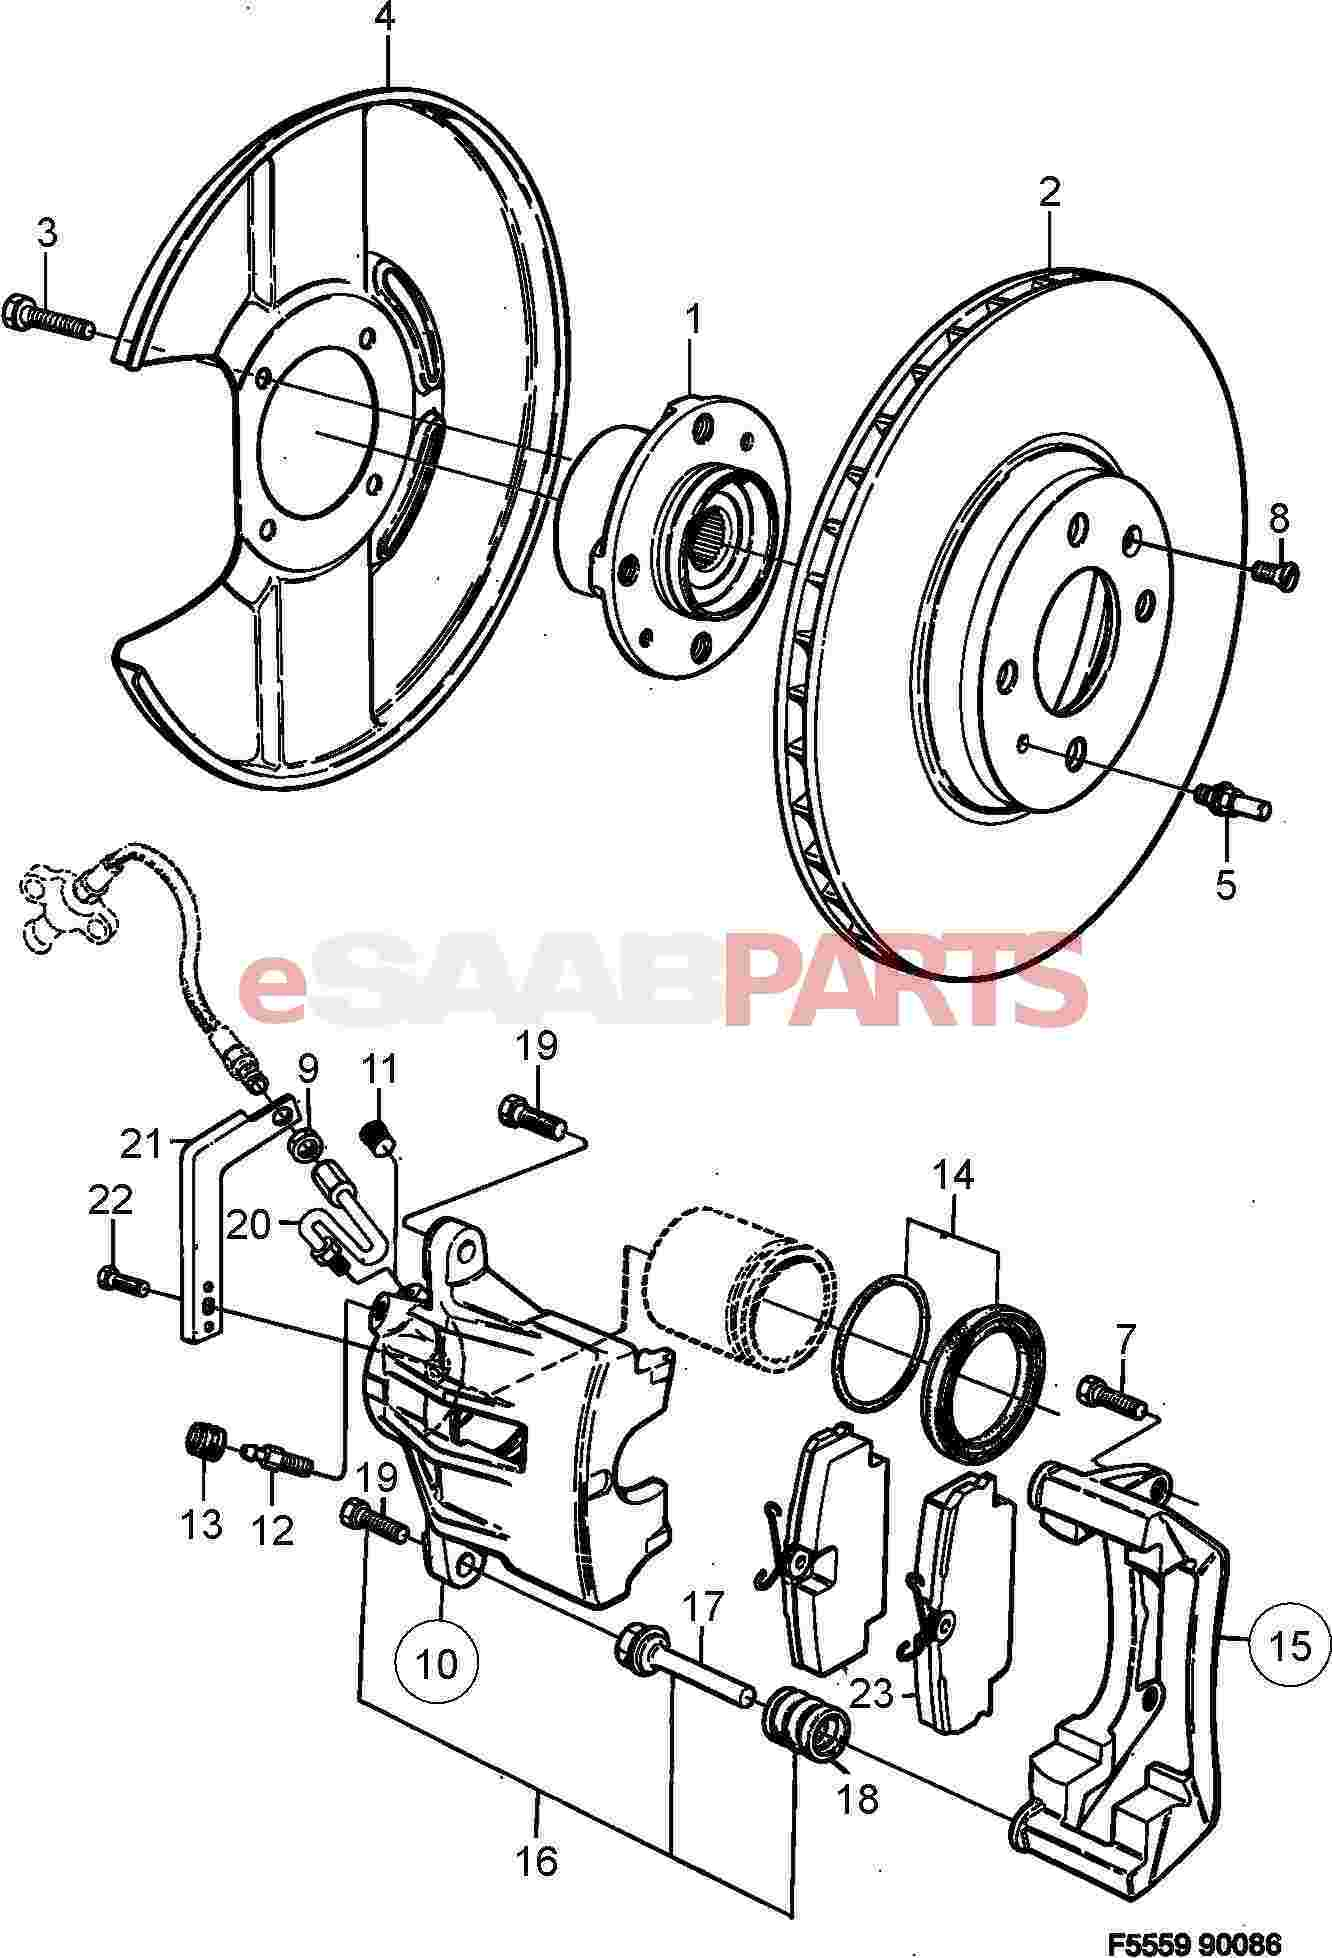 Jeep Zj Fuse Box Grand Cherokee Diagram Image Change likewise Saab Turbo Engine Diagram furthermore Gm 3 6 Vvt Engine Problems as well 2006 Nissan Altima Thermostat Location further Saab Brake Caliper Diagram. on saab 9 3 thermostat location